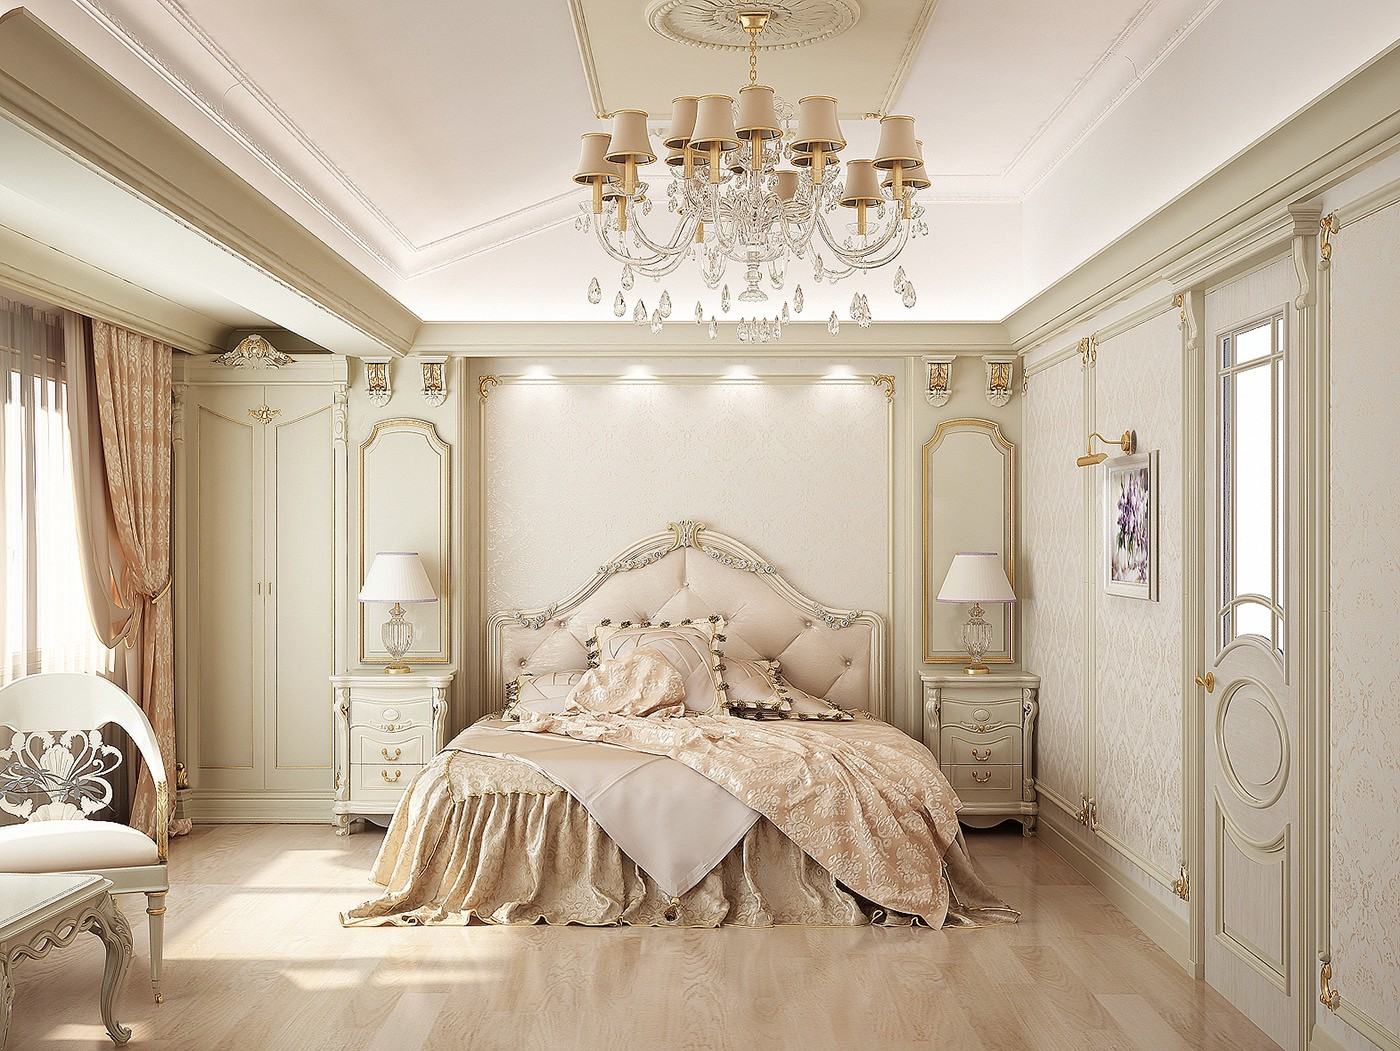 Classy elegant traditional bedroom design